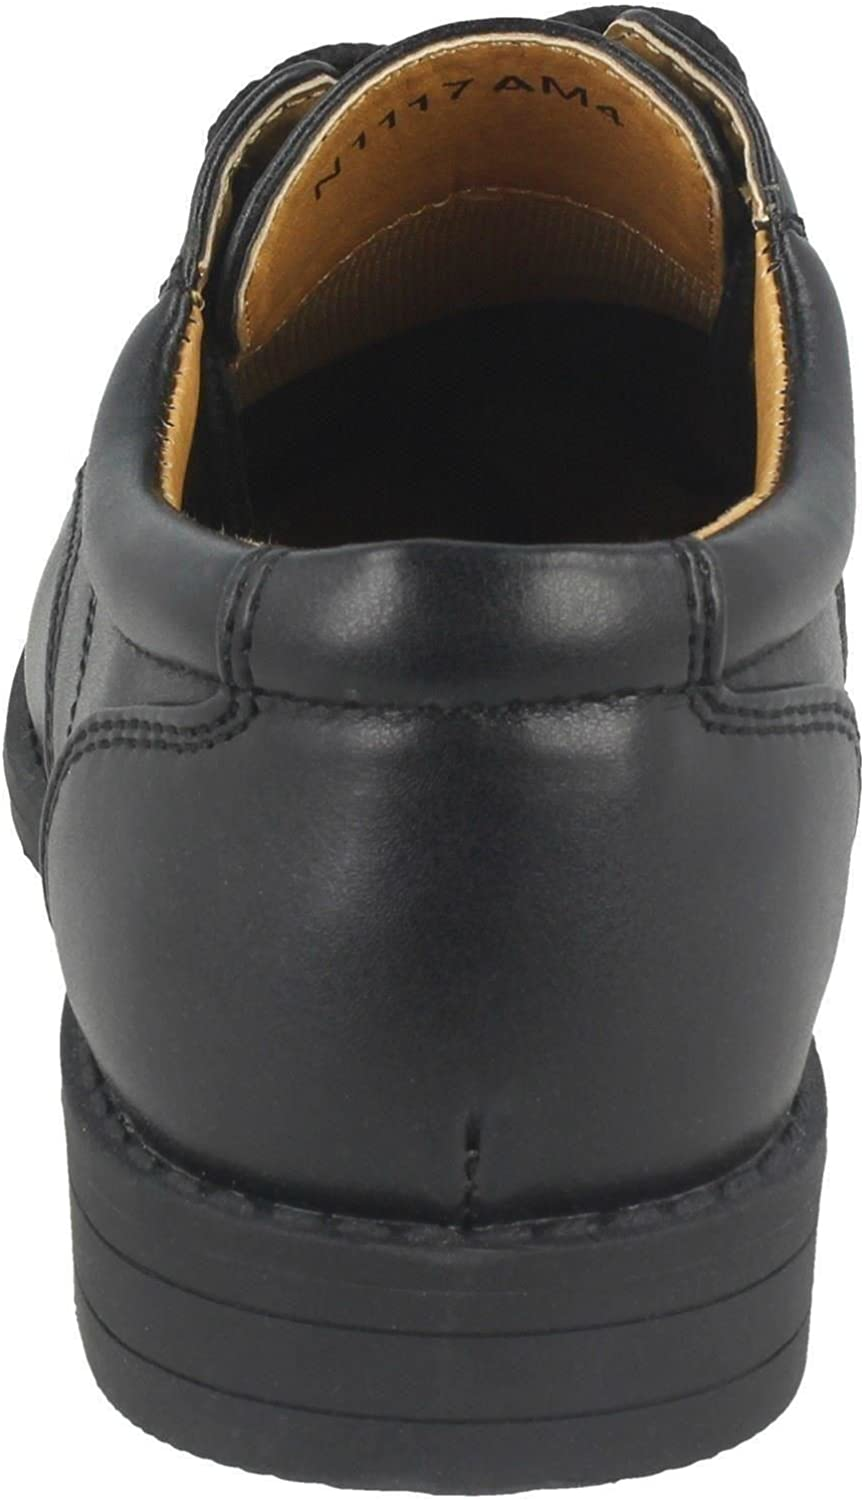 Cool for School Childrens Boys Formal Lace Up Shoes